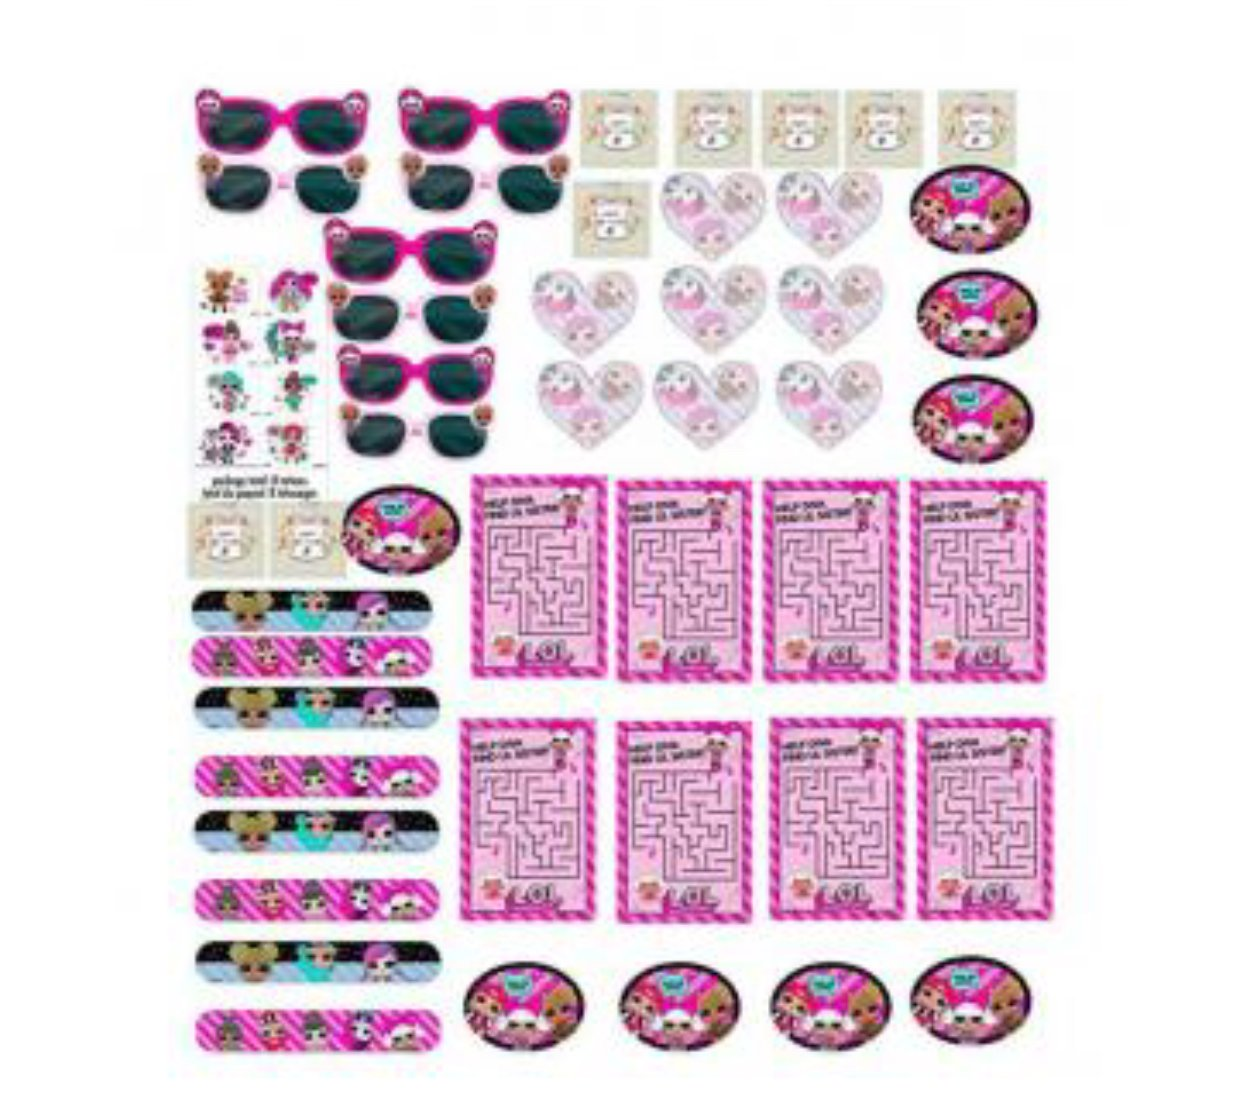 lol Party Supplies Birthday Favor Pack - Variety Assortment Bundle of Activity Sheets, Slap Bracelets, Novelty Glasses, Temporary Tattoos, Stickers, Mini Notepads and Birthday Tattoo's For 8 Guests by Unknown